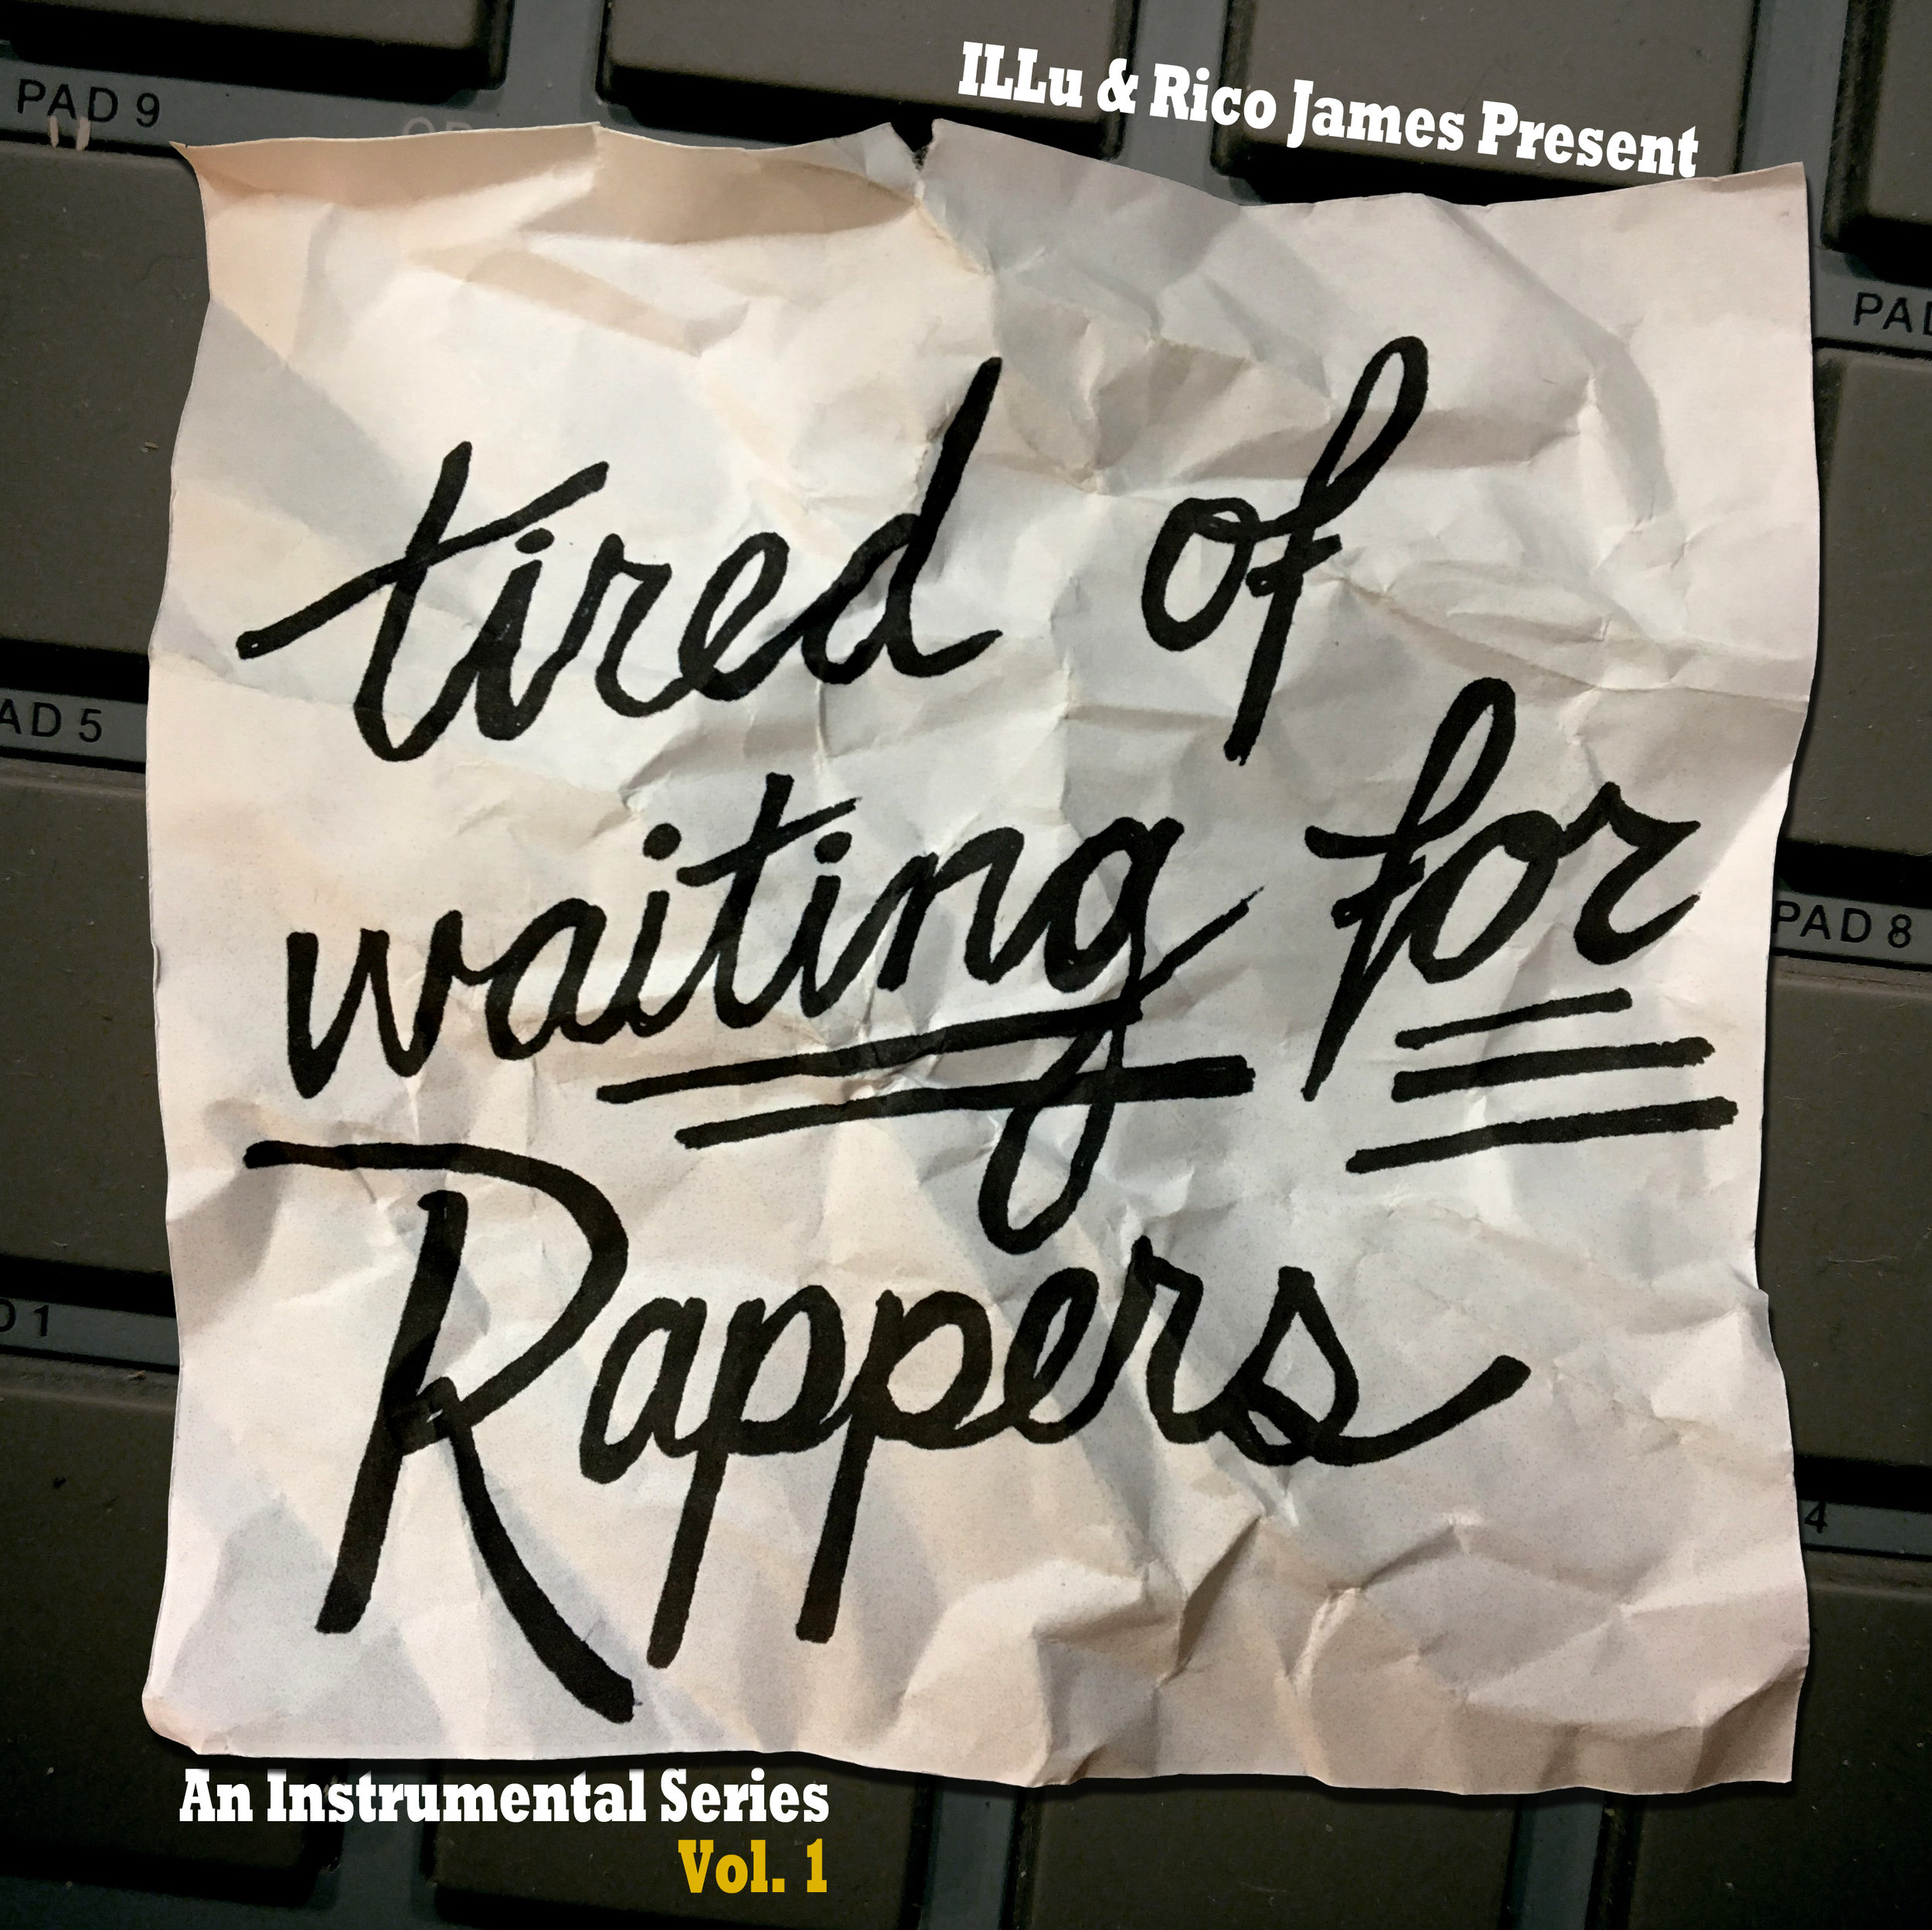 Tired Of Waiting For Rappers Vol. 1